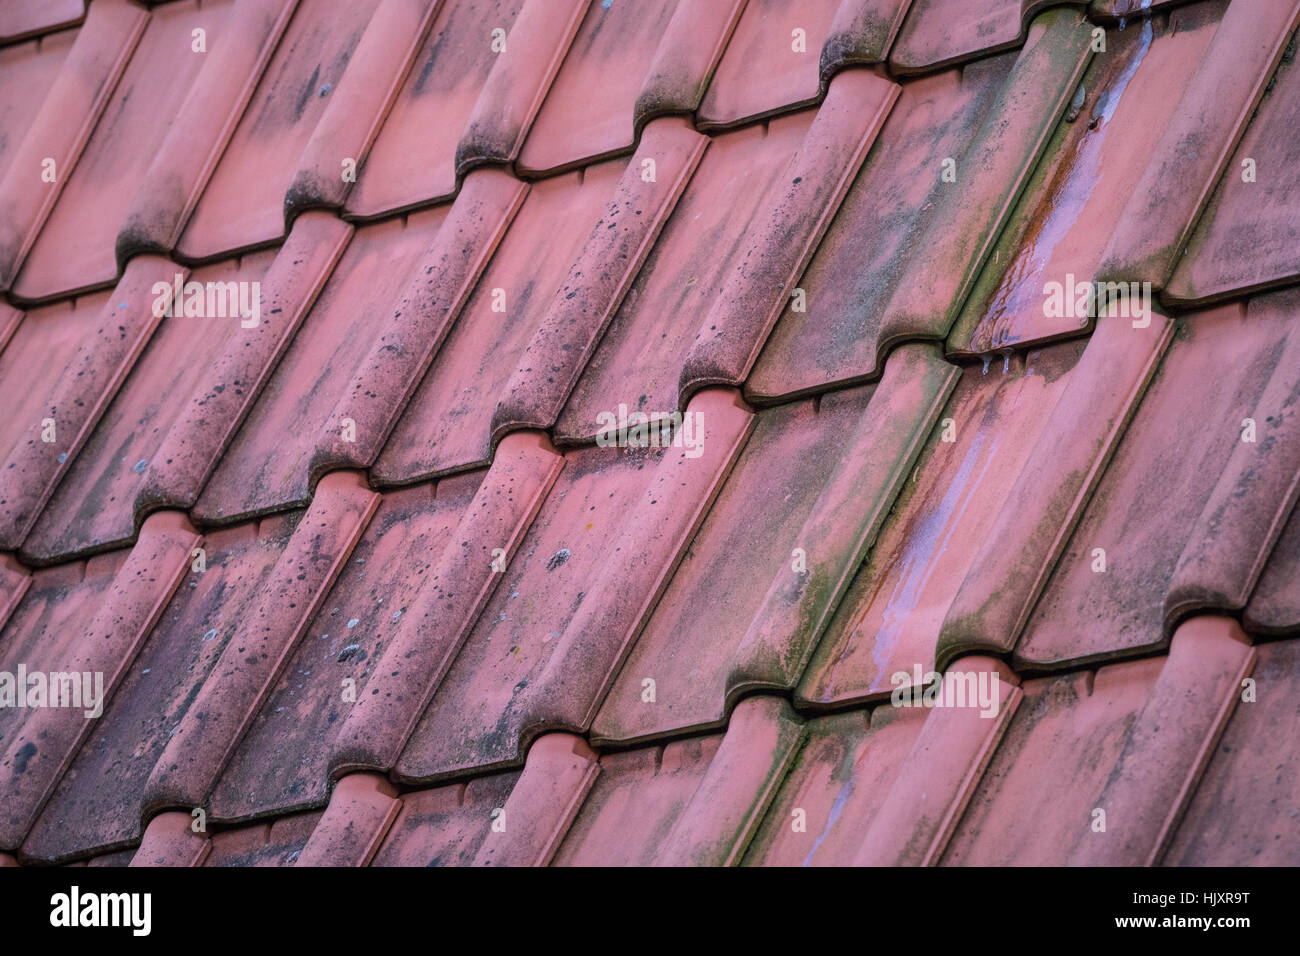 Violet tile roof with diagonal alignment - Stock Image